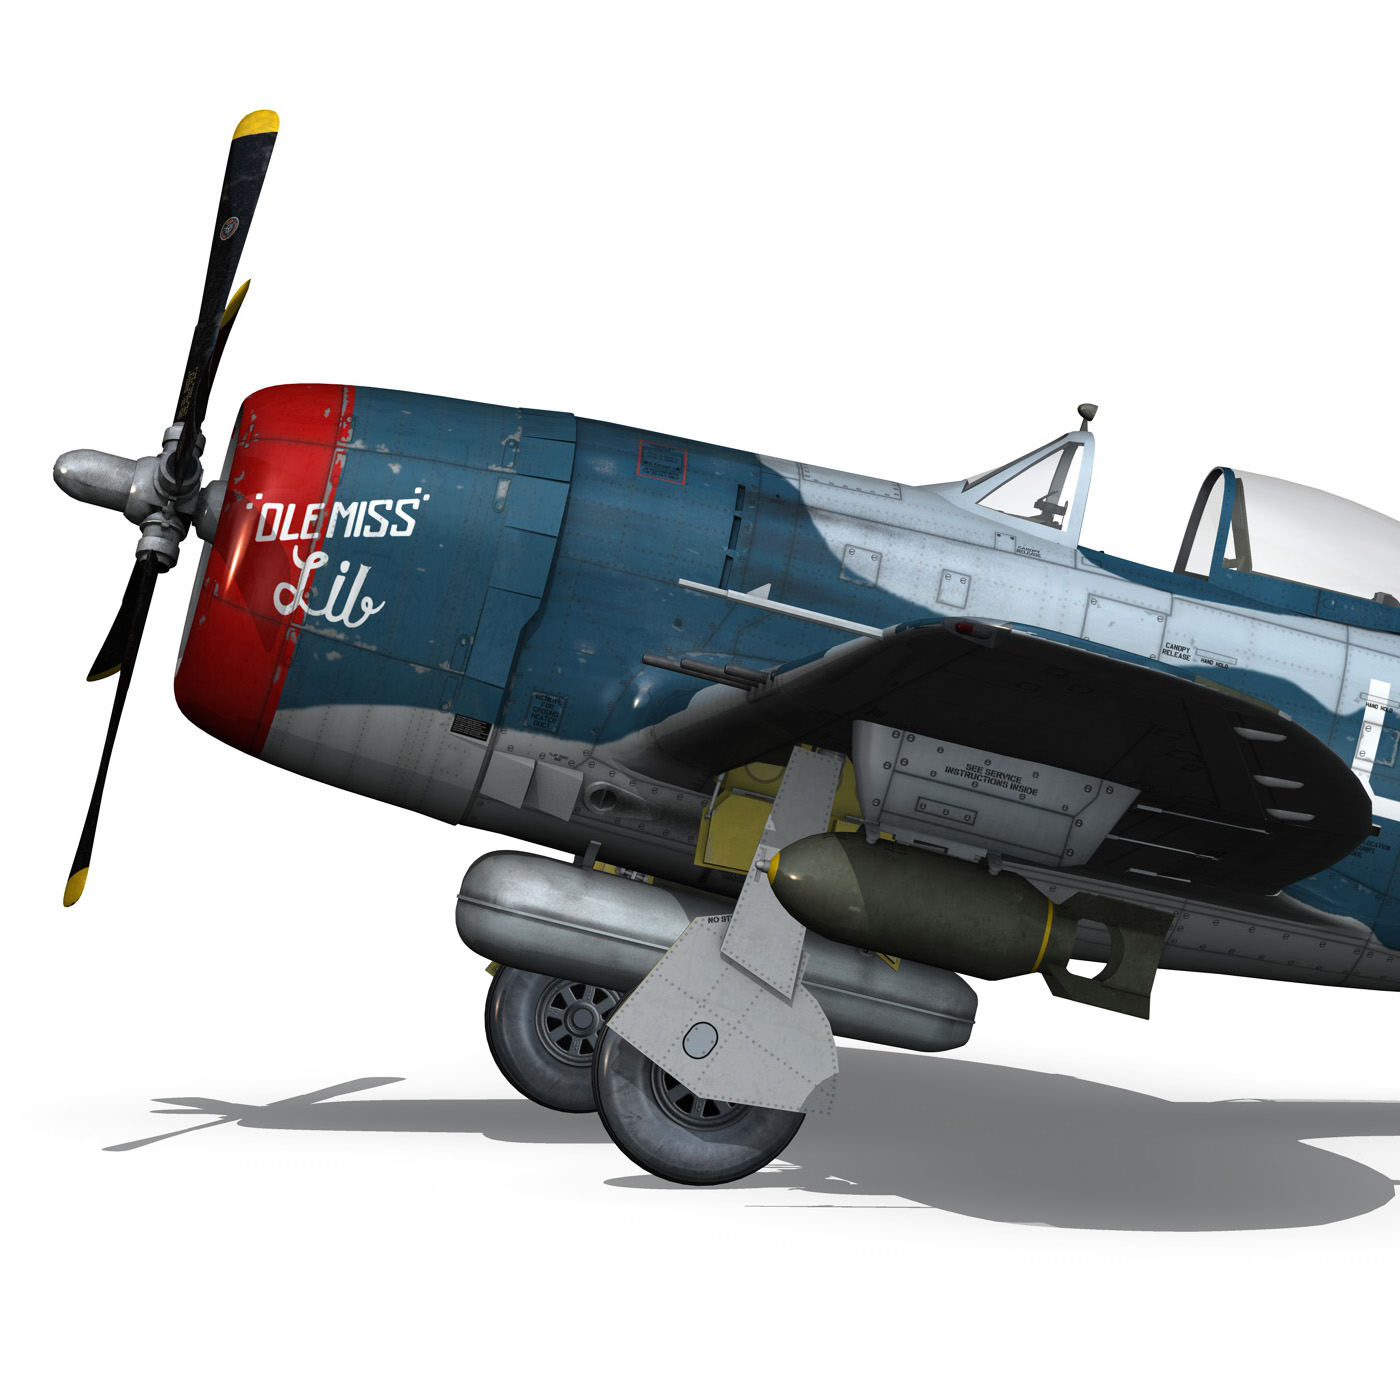 republic p-47 thunderbolt – ole miss lib 3d model fbx c4d lwo obj 274282